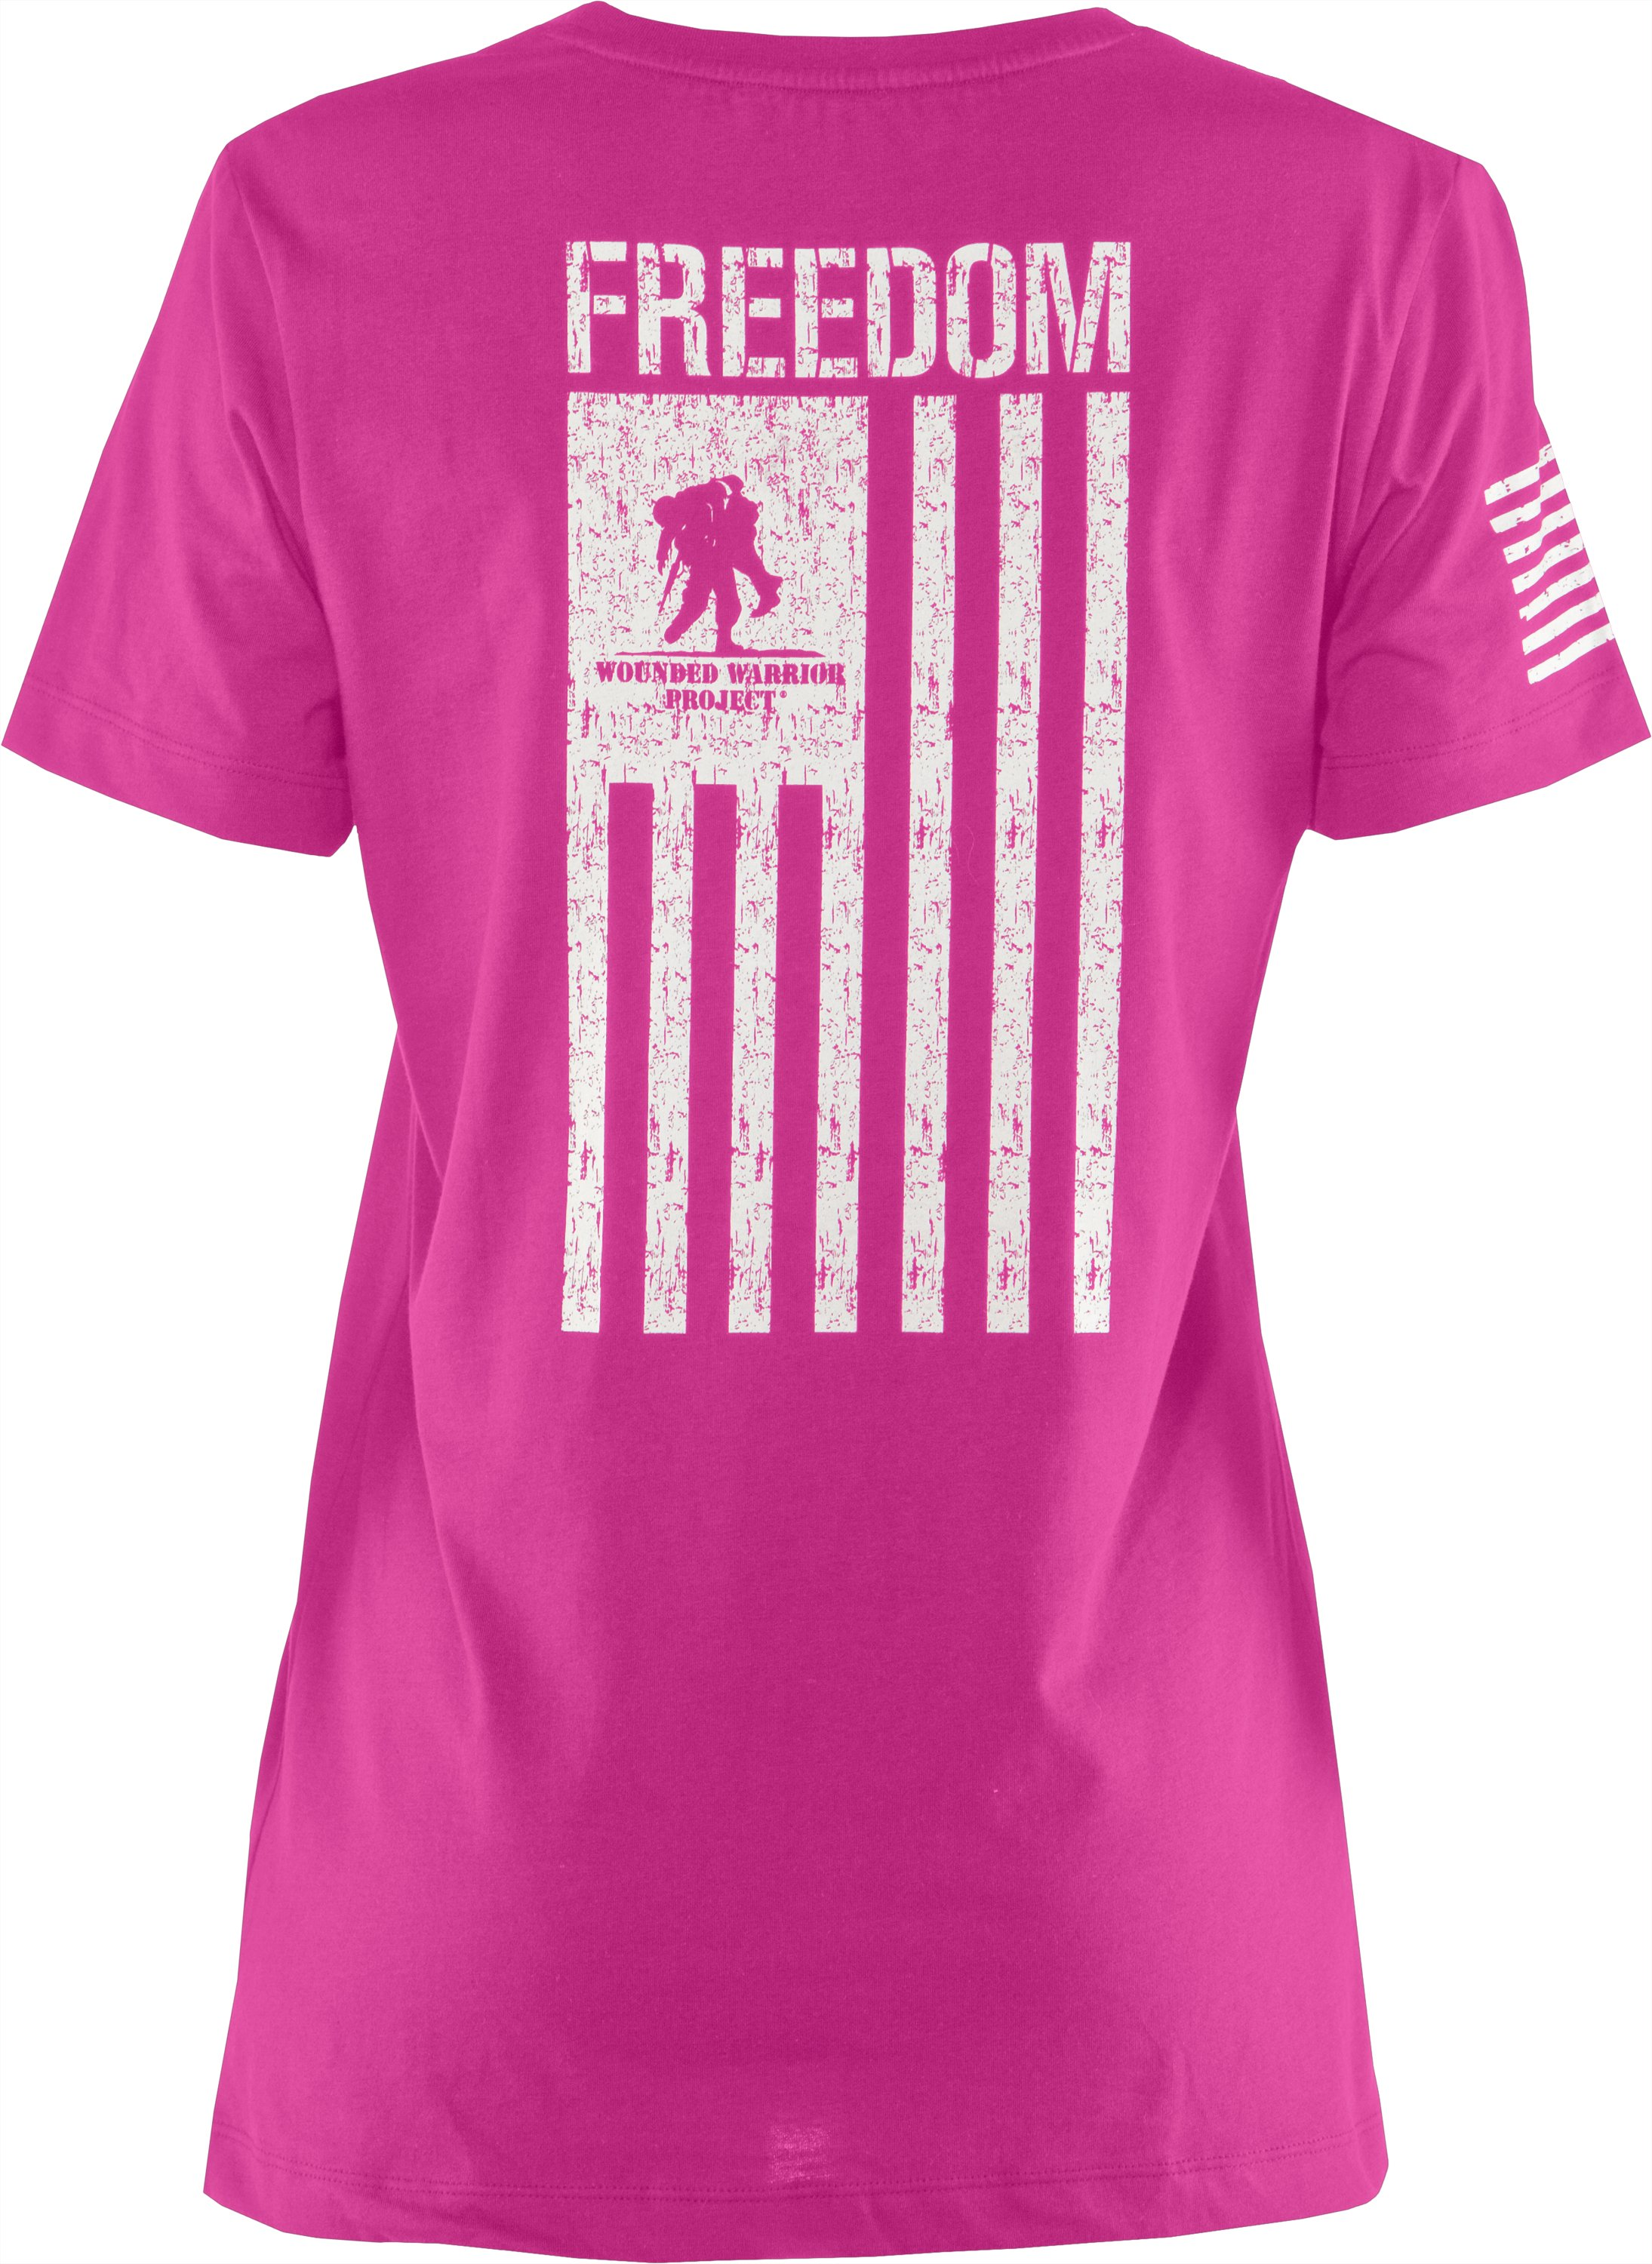 Women's WWP Freedom Flag T-Shirt, Pink Essence